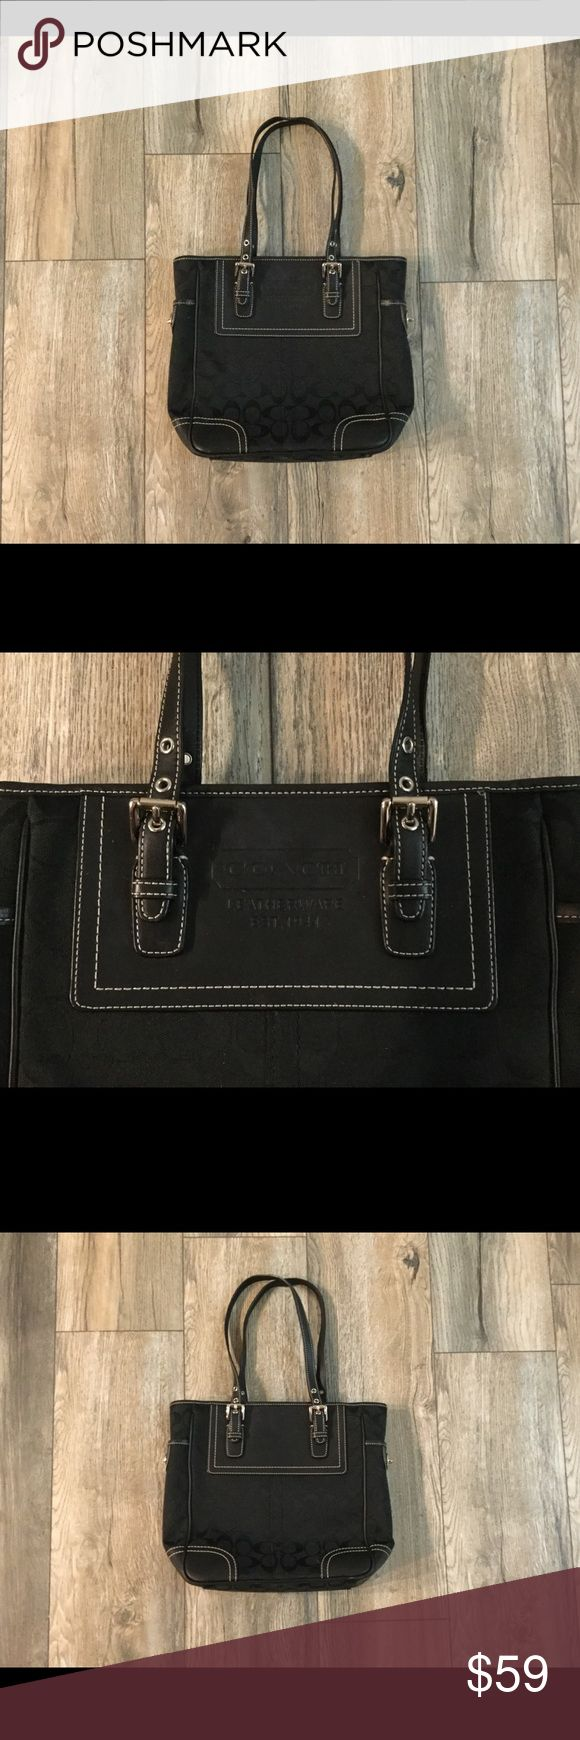 Like New Coach handbag I only used this bag once. It is in like new condition. Coach Bags Shoulder Bags